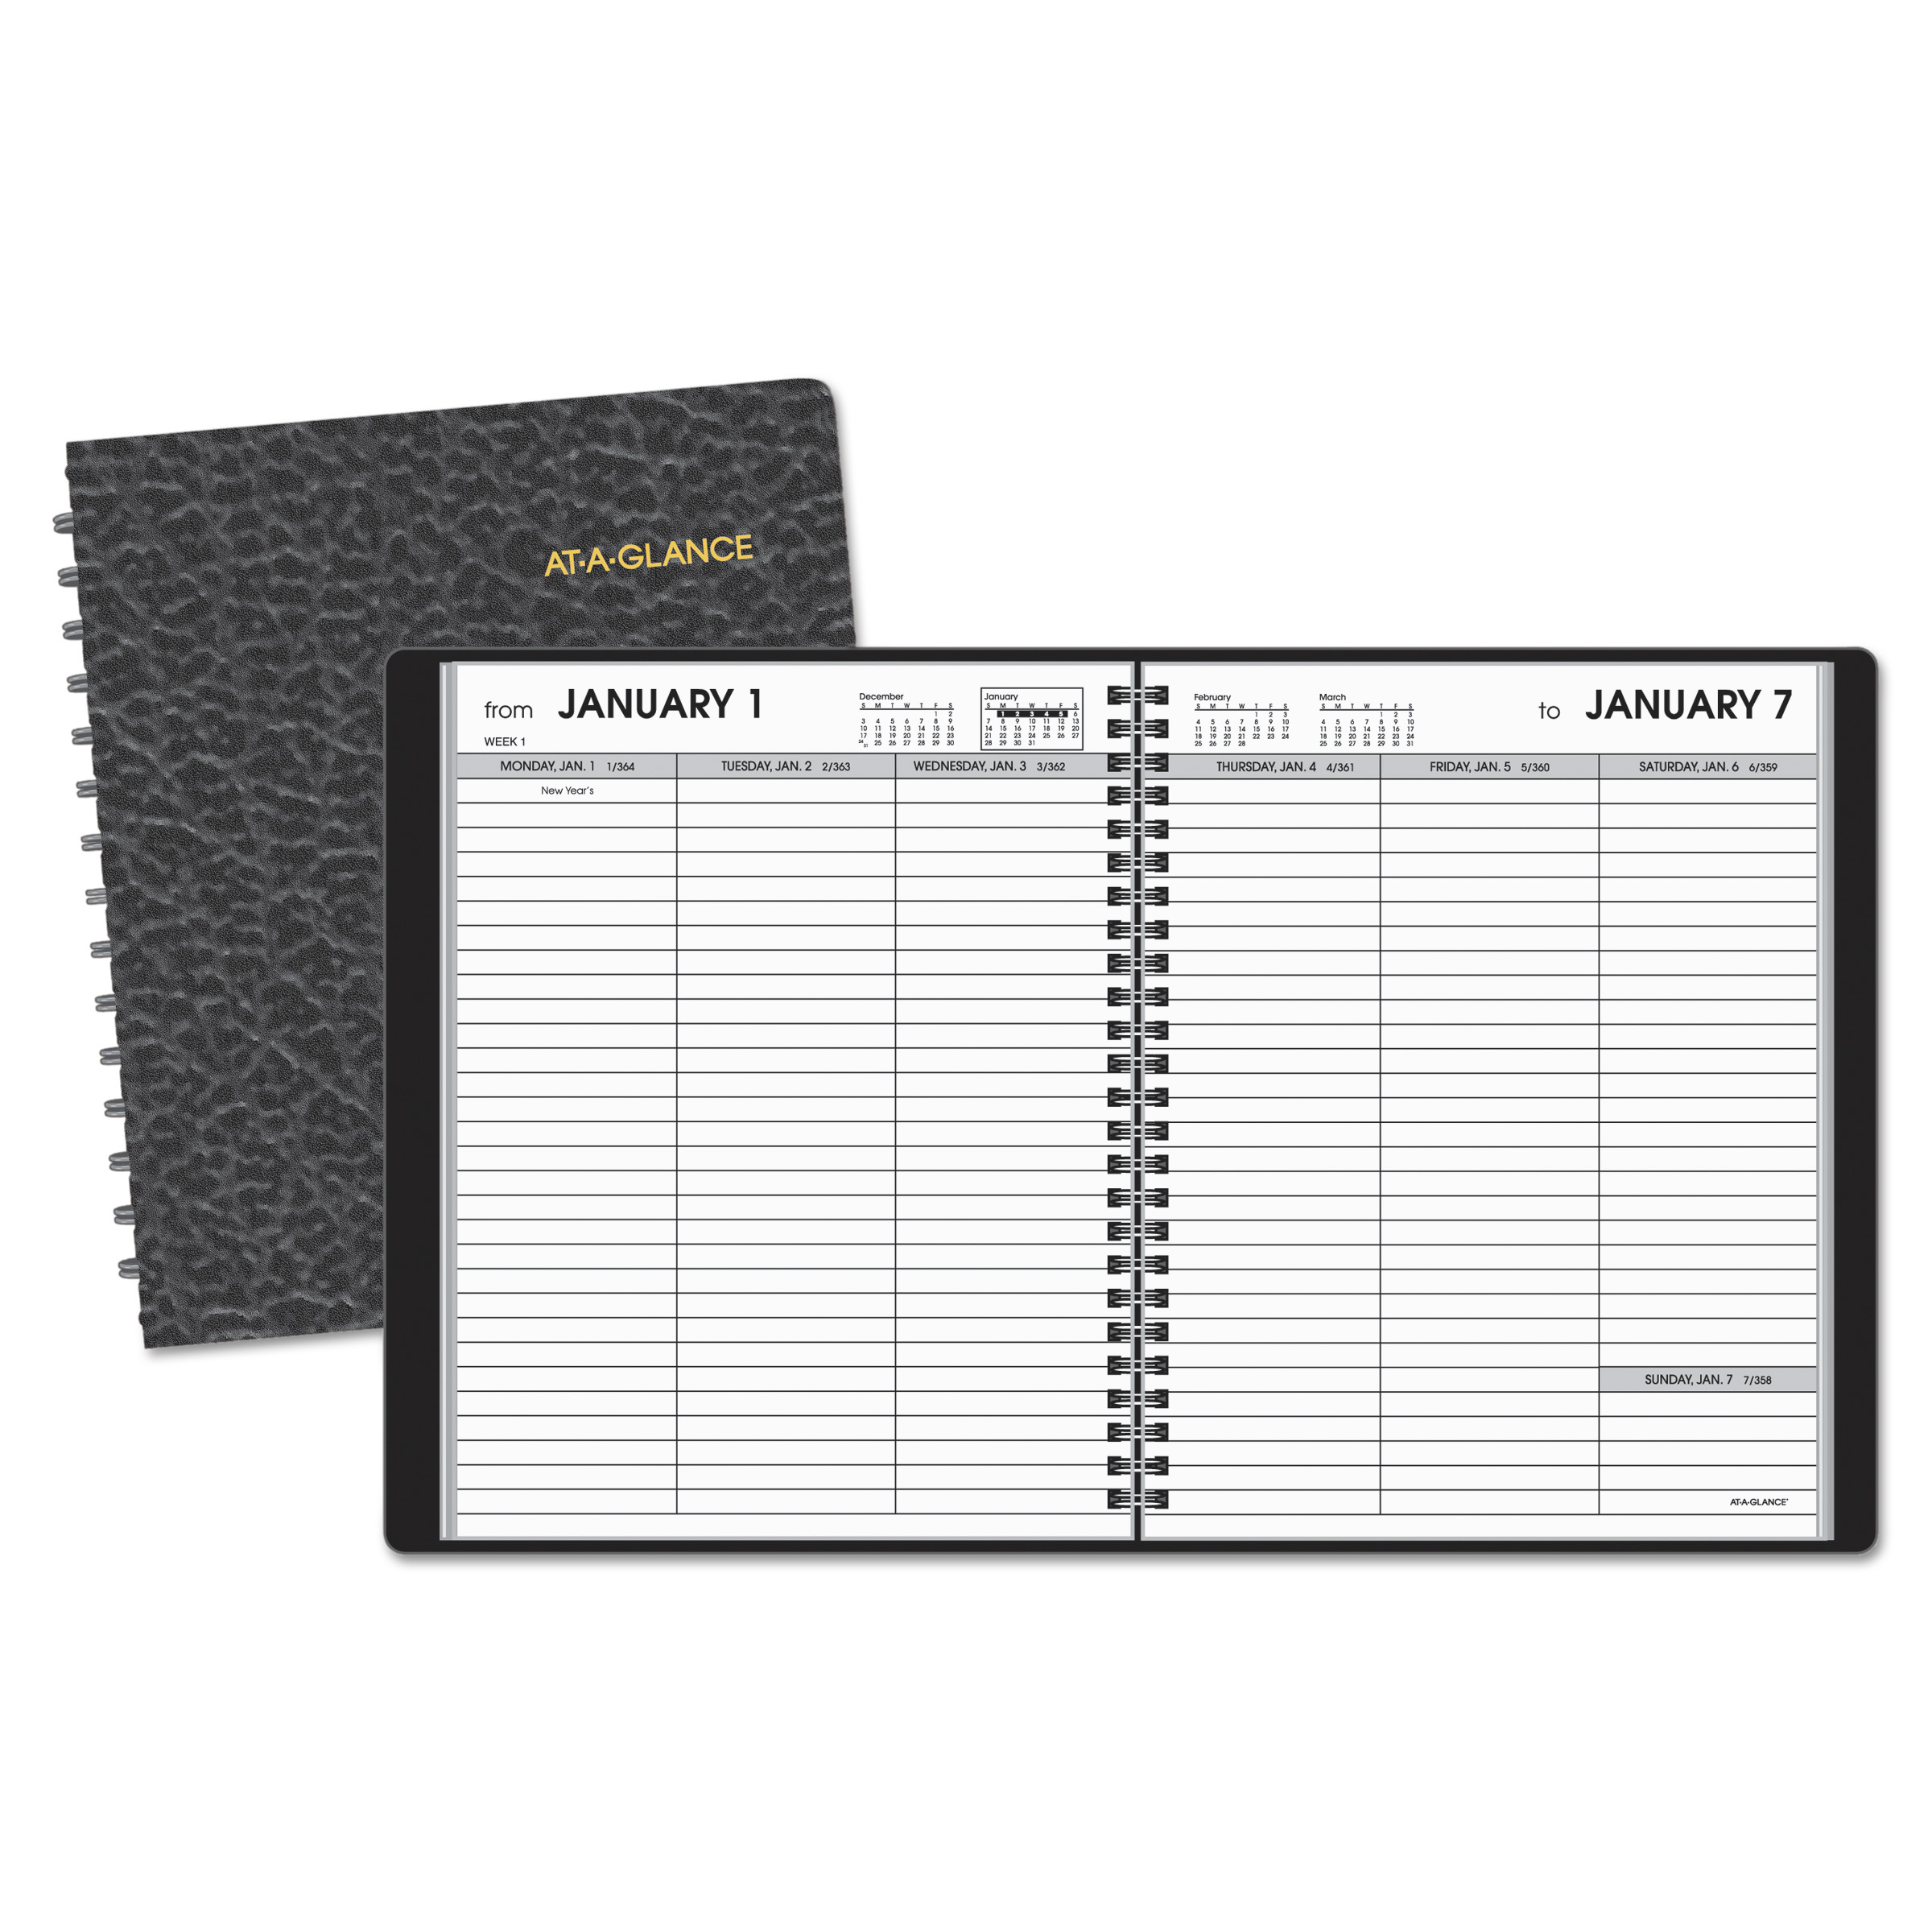 At-A-Glance 7085505 Weekly Planner Ruled For Open Scheduling, 6 3/4 X 8 3/4, Black, 2017